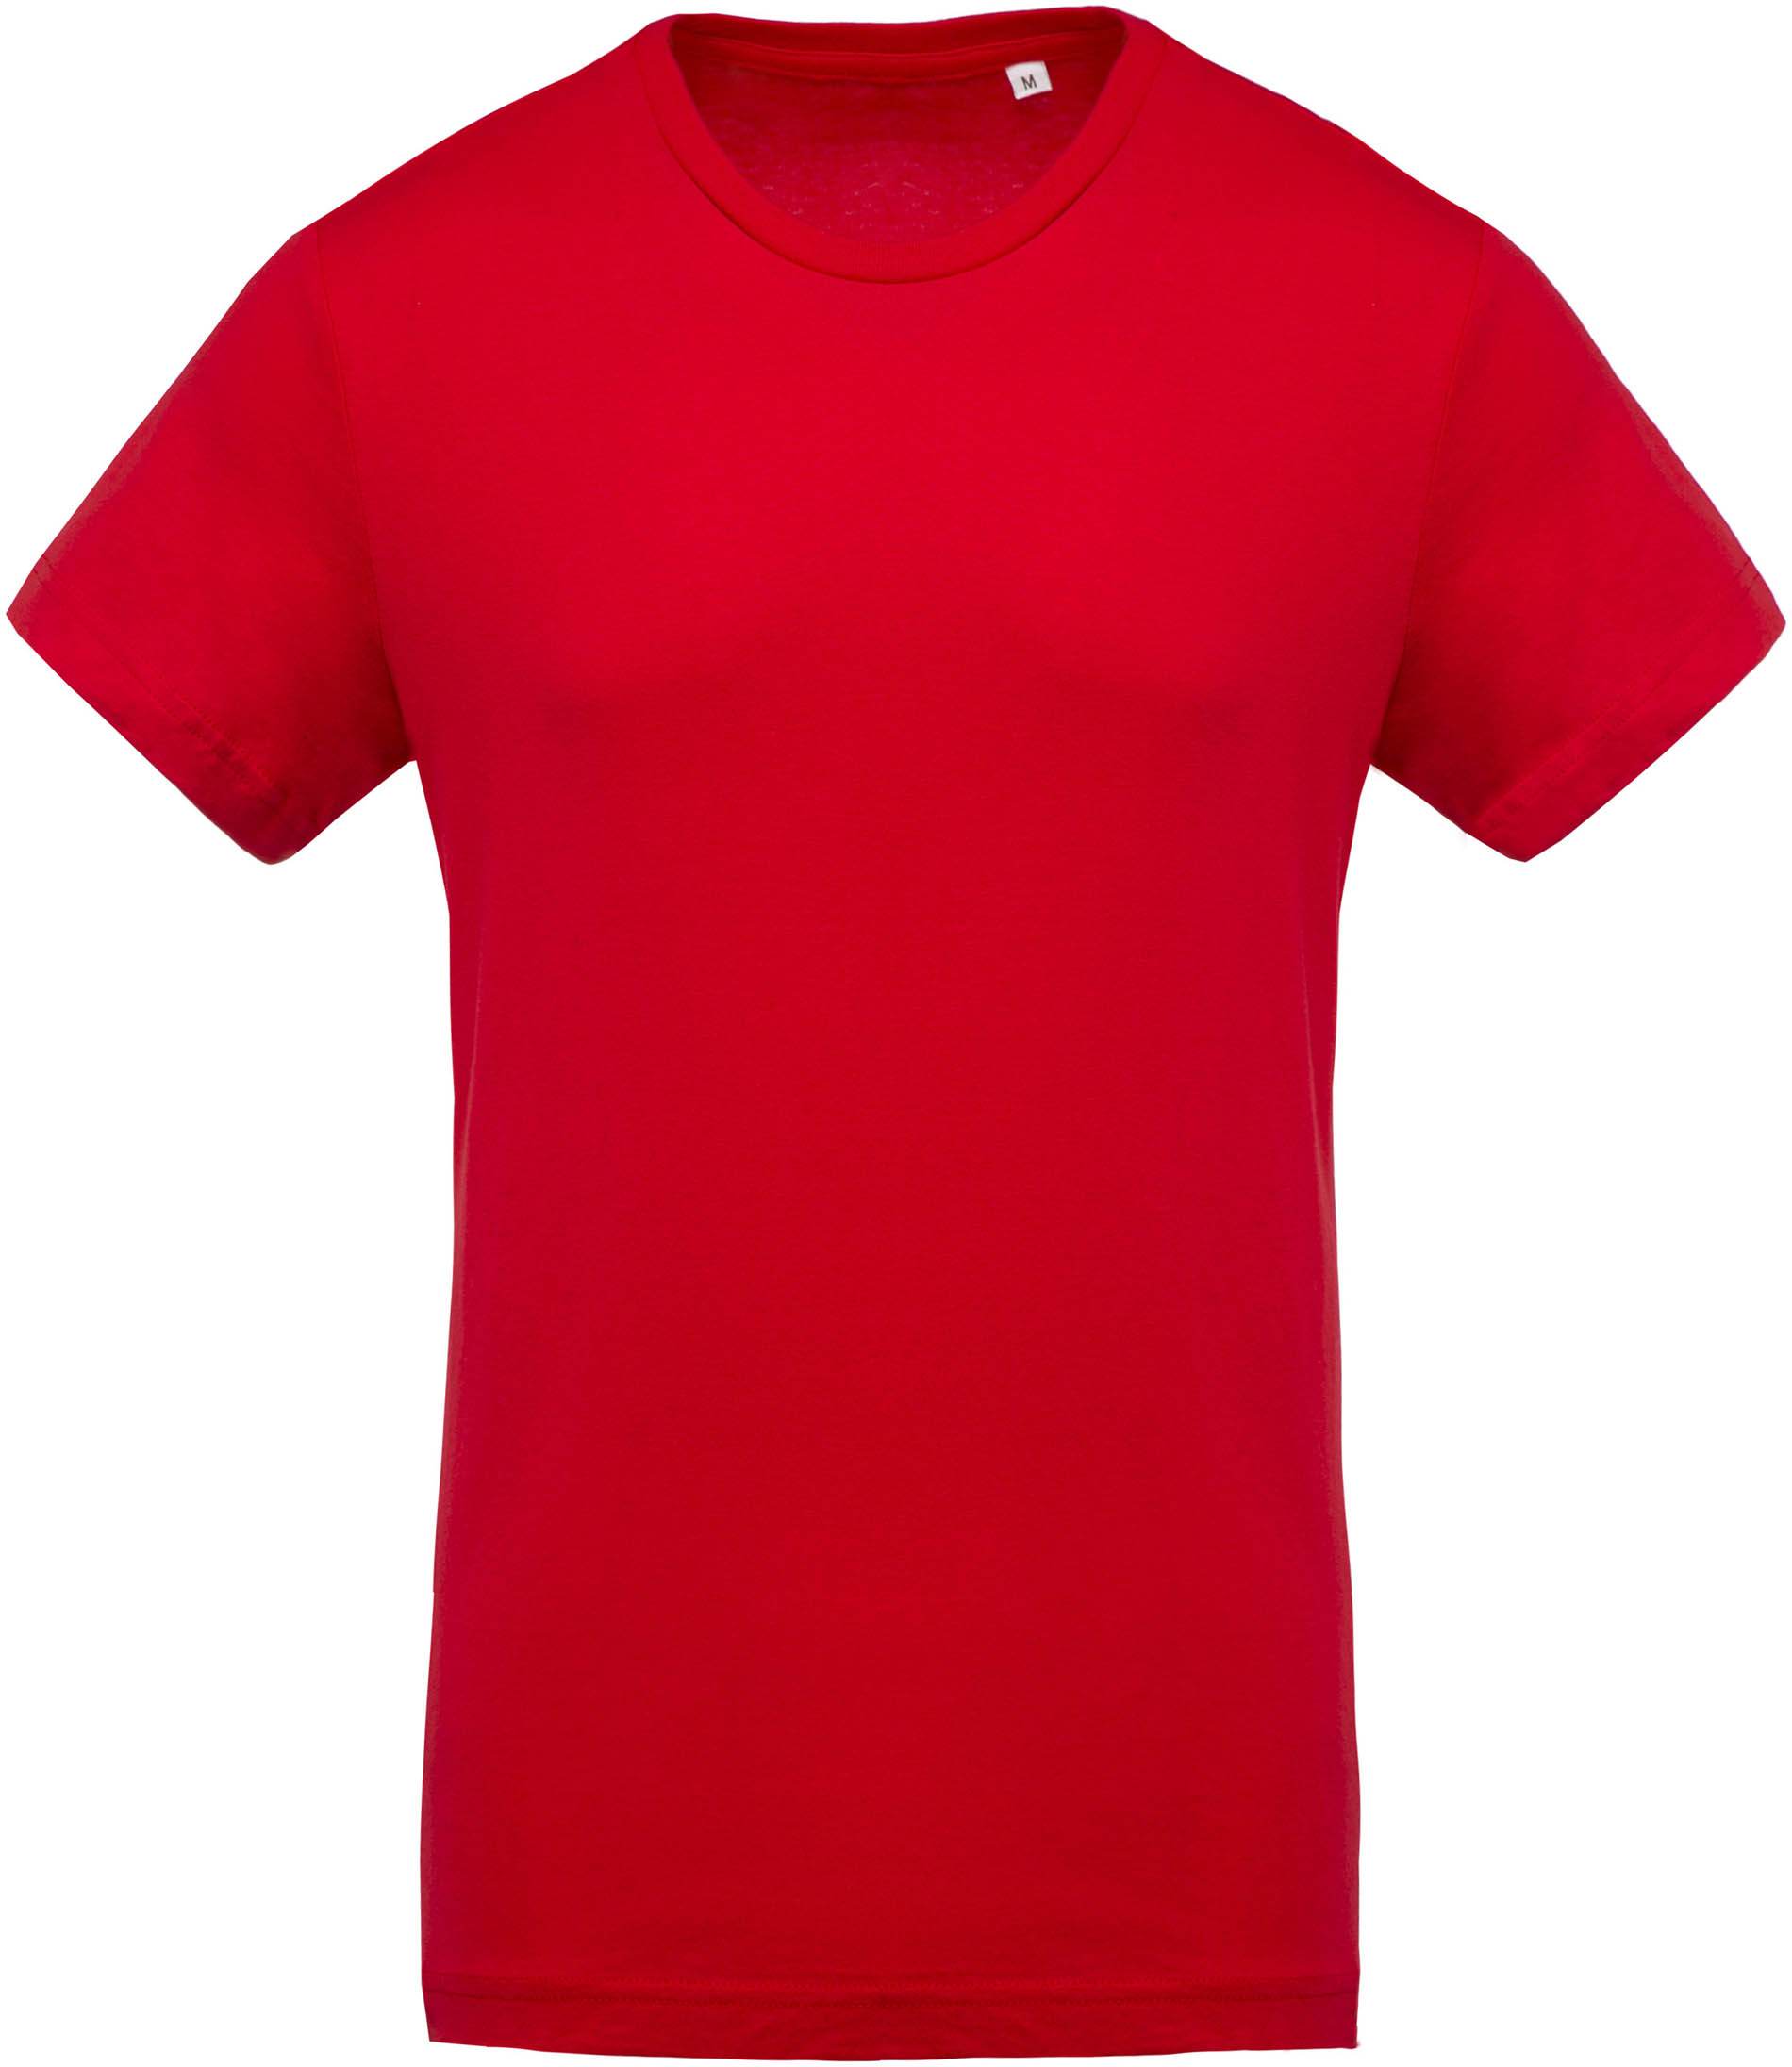 t shirt coton bio col rond homme red gladiasport. Black Bedroom Furniture Sets. Home Design Ideas